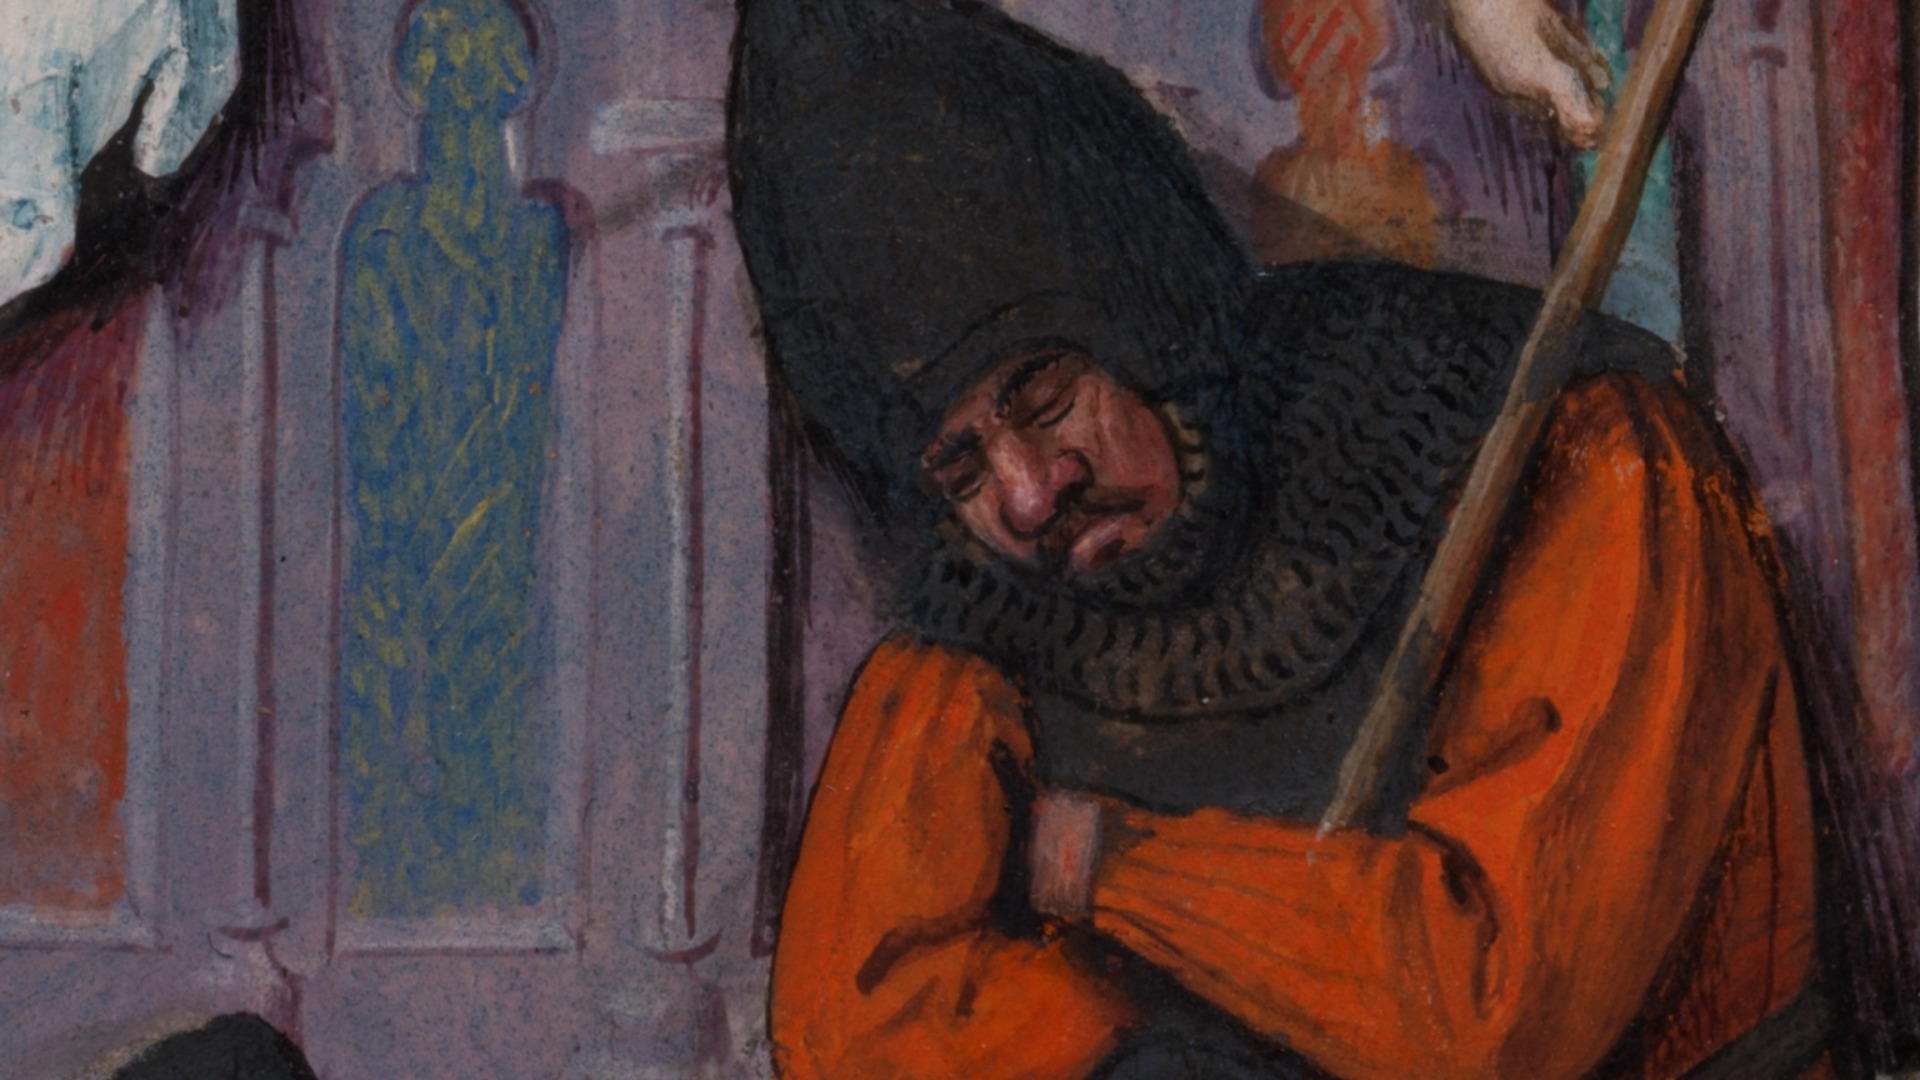 Detail of a sleeping soldier taken from the Milan-Turin Hours (folio 77v, <em>The Ressurection</em>). Image: closertovaneyck.kikirpa.be